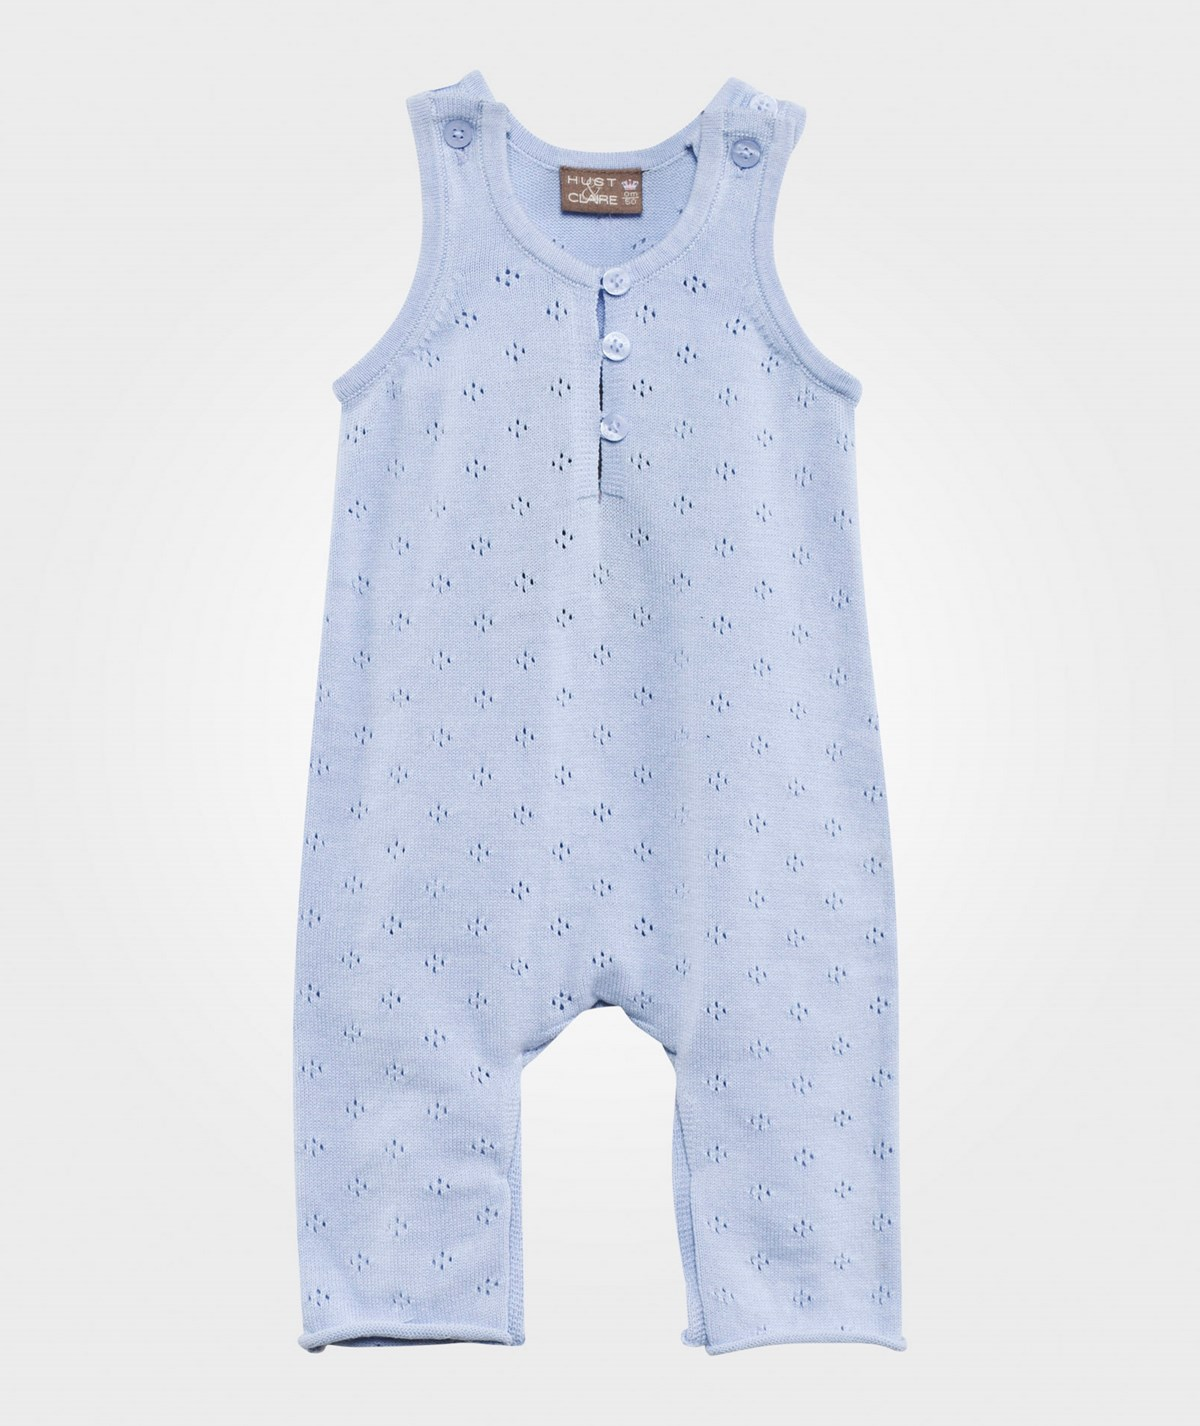 Knitted Overall Light Blue - Hust Claire - Babyshop 44abf0a43687e